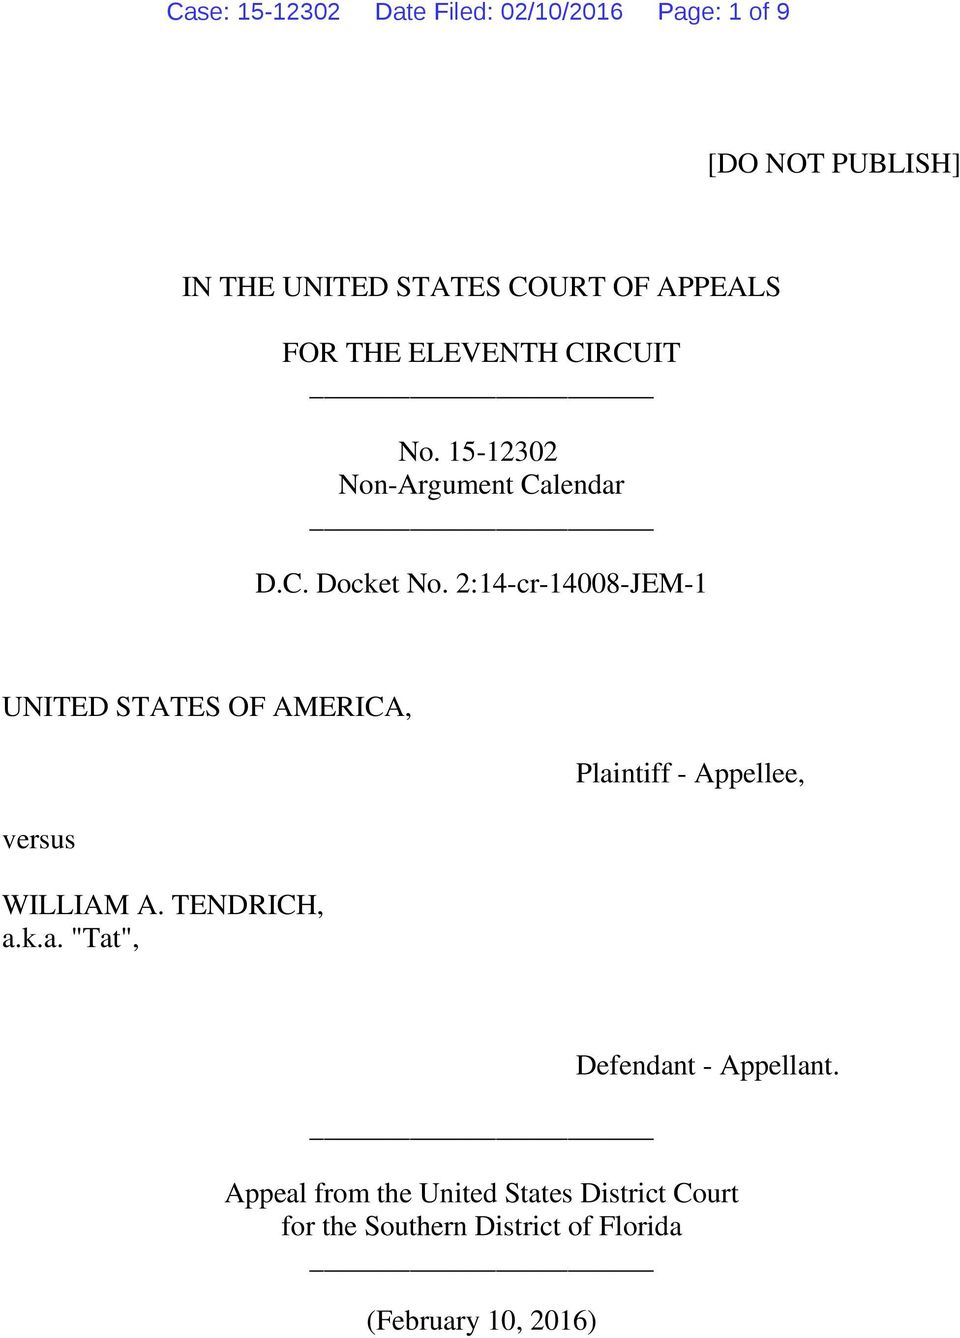 2:14-cr-14008-JEM-1 UNITED STATES OF AMERICA, versus WILLIAM A. TENDRICH, a.